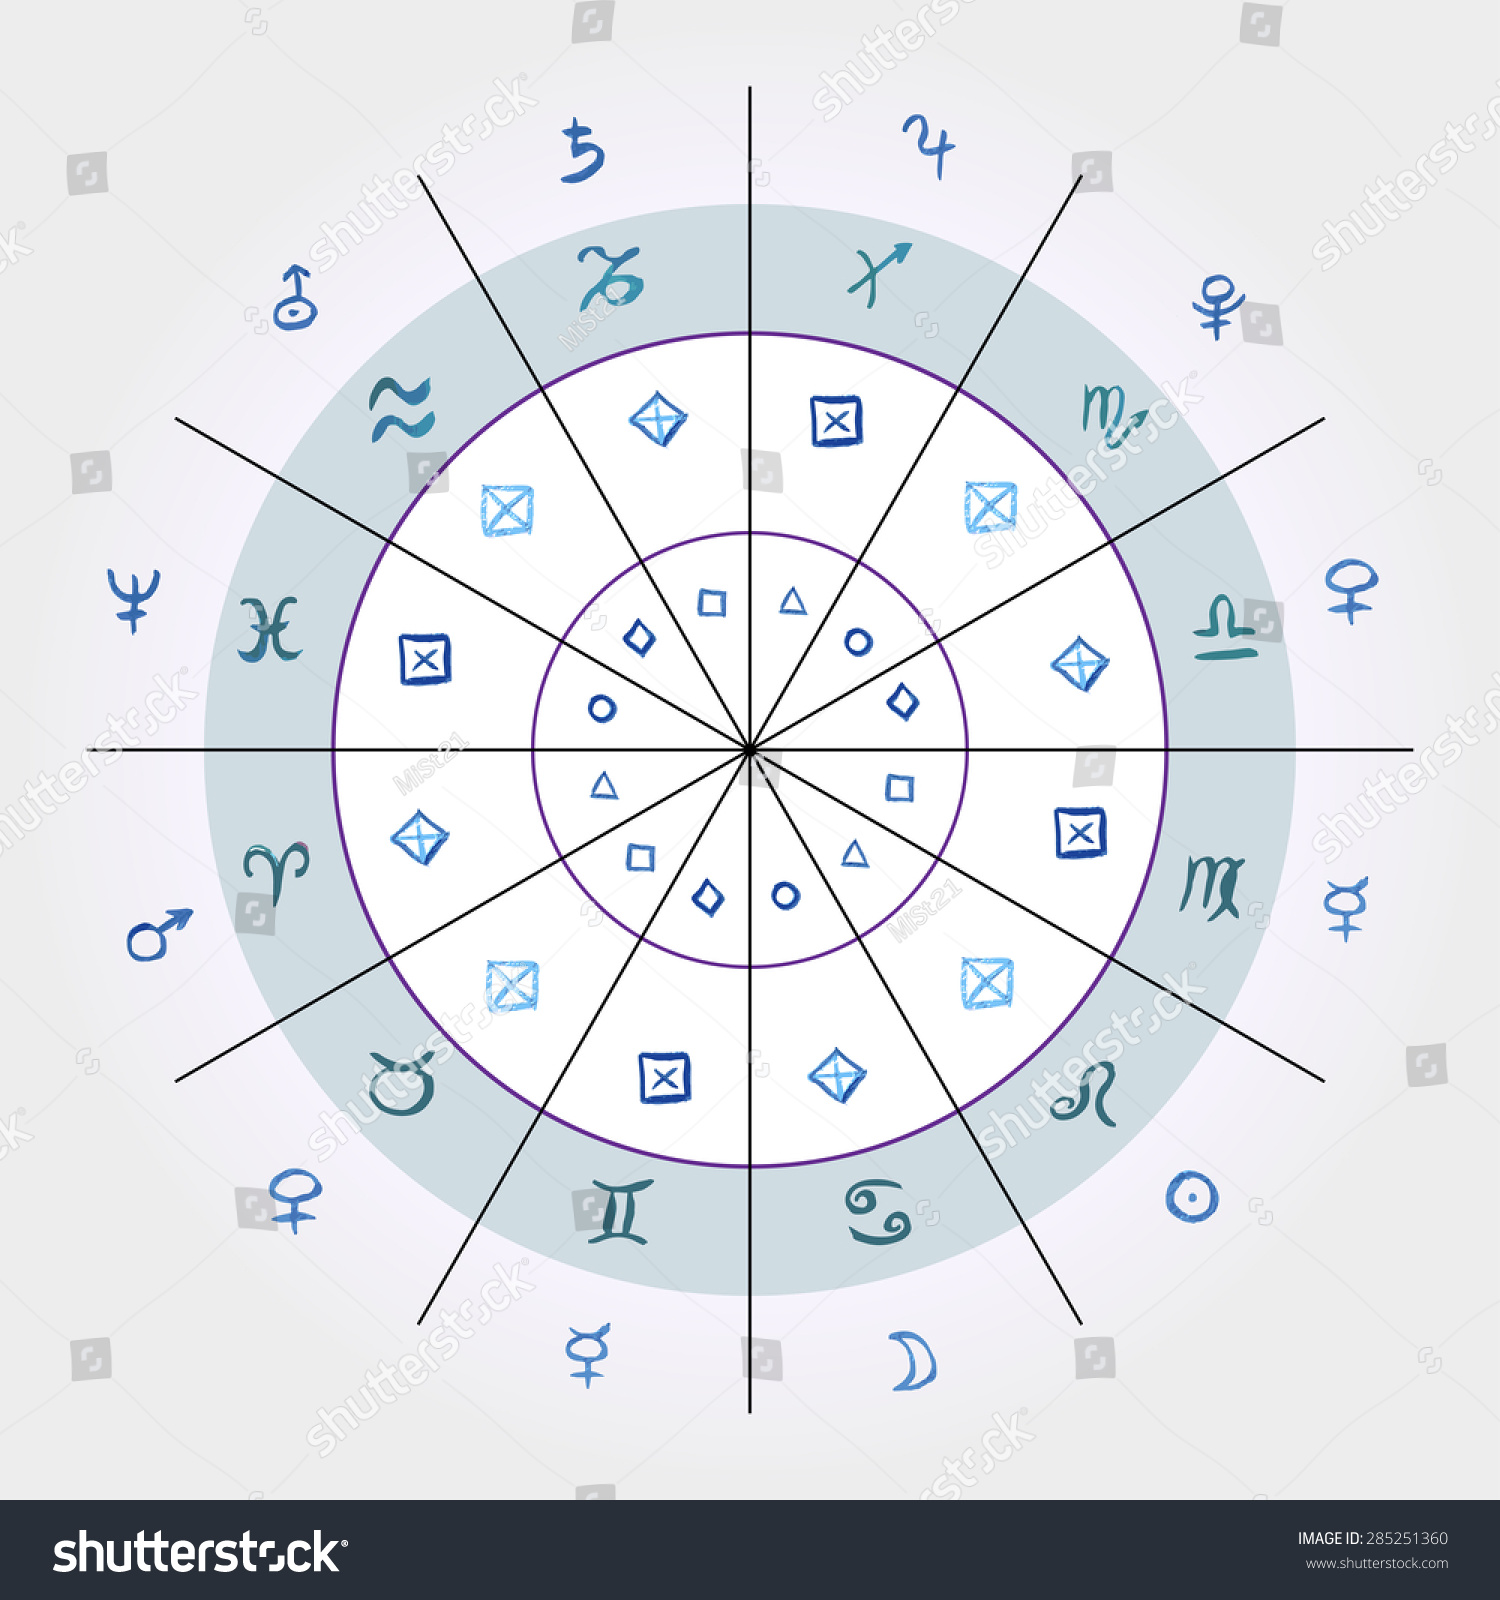 Astrological chart free image collections free any chart examples astrological chart free images free any chart examples astrological chart free choice image free any chart nvjuhfo Image collections